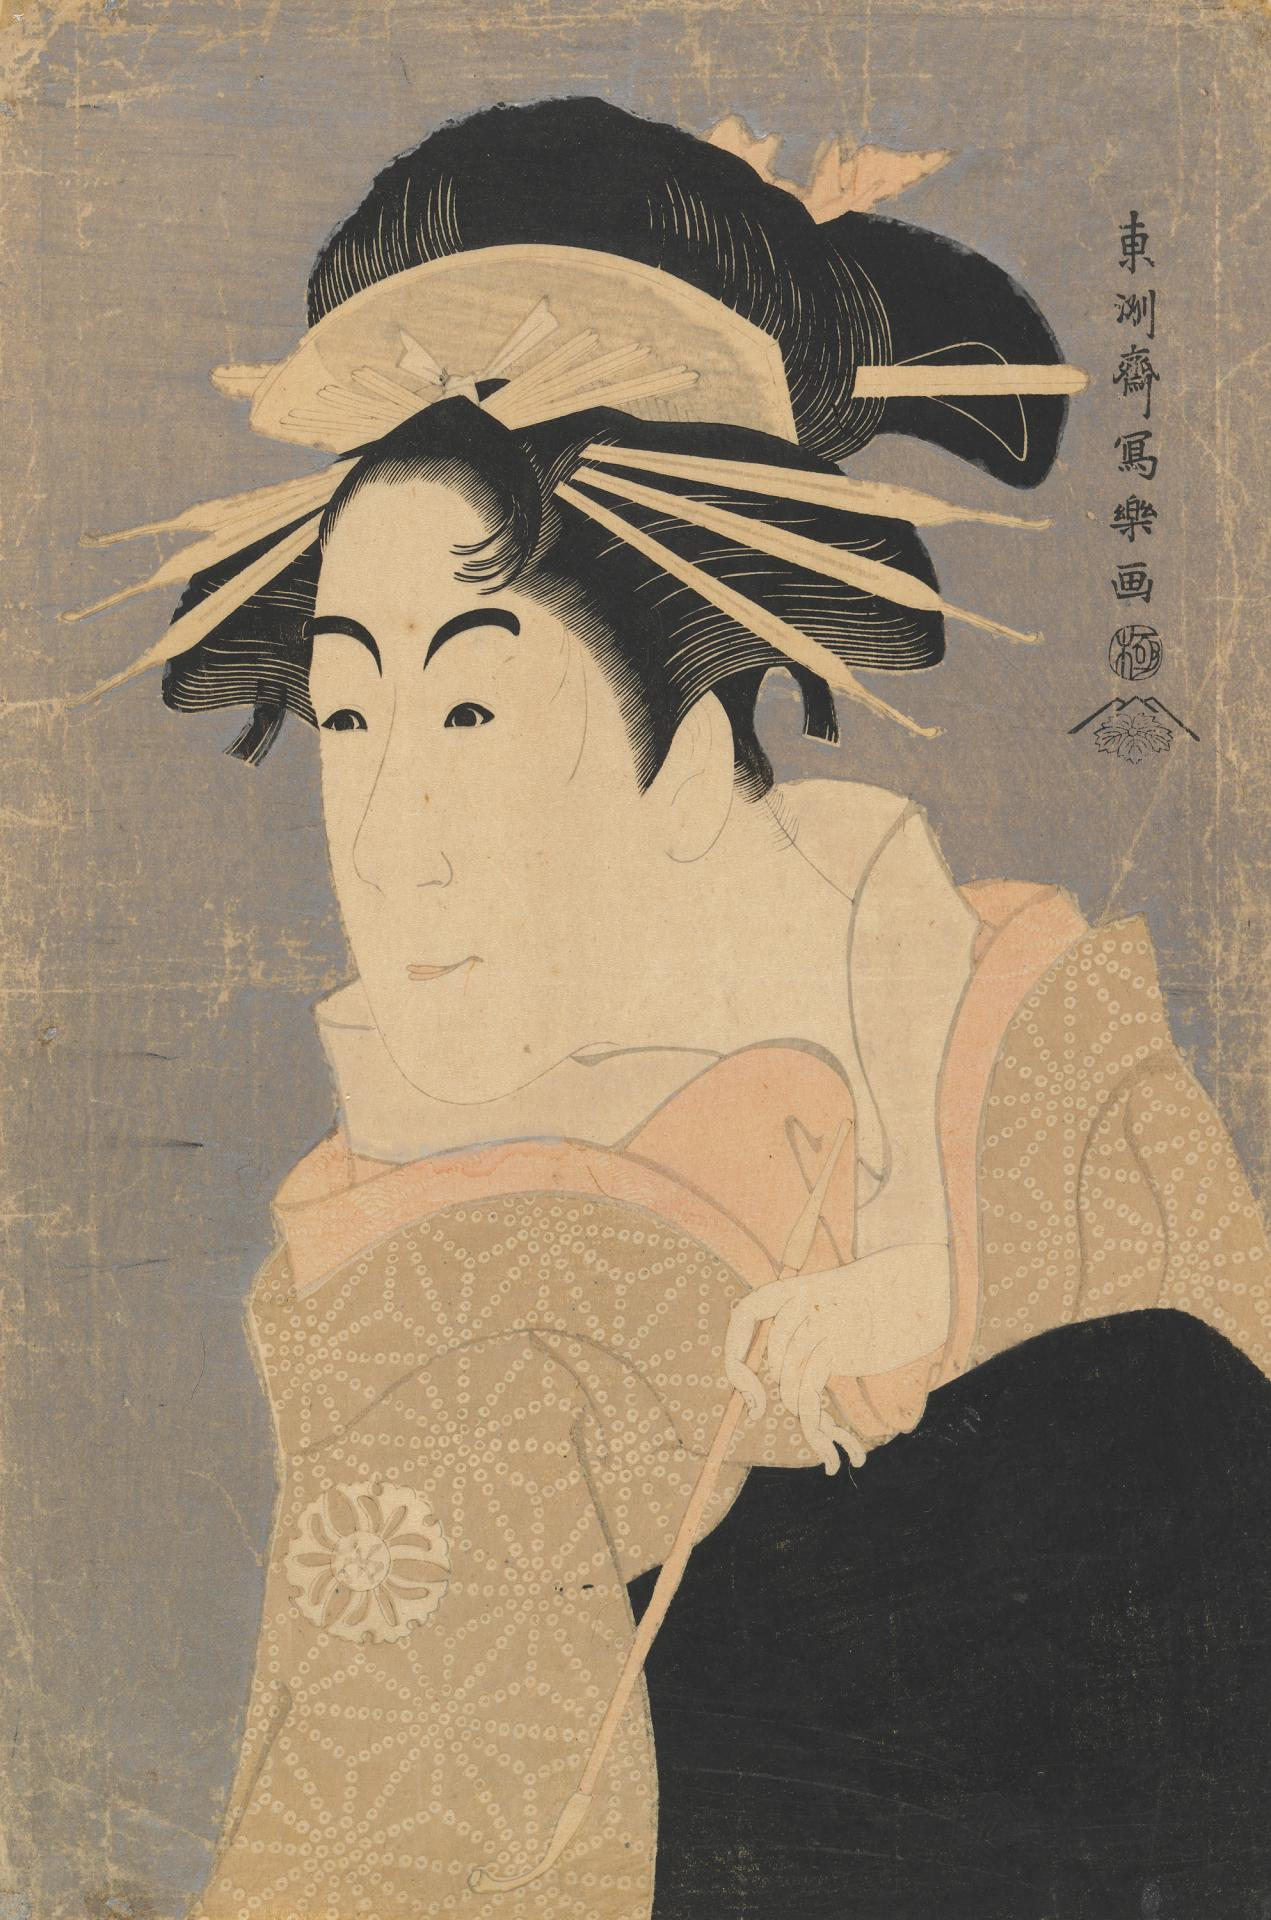 Actor Matsumoto Yonesaburō as Kewaizaka no Shōshō, actually Shinobu